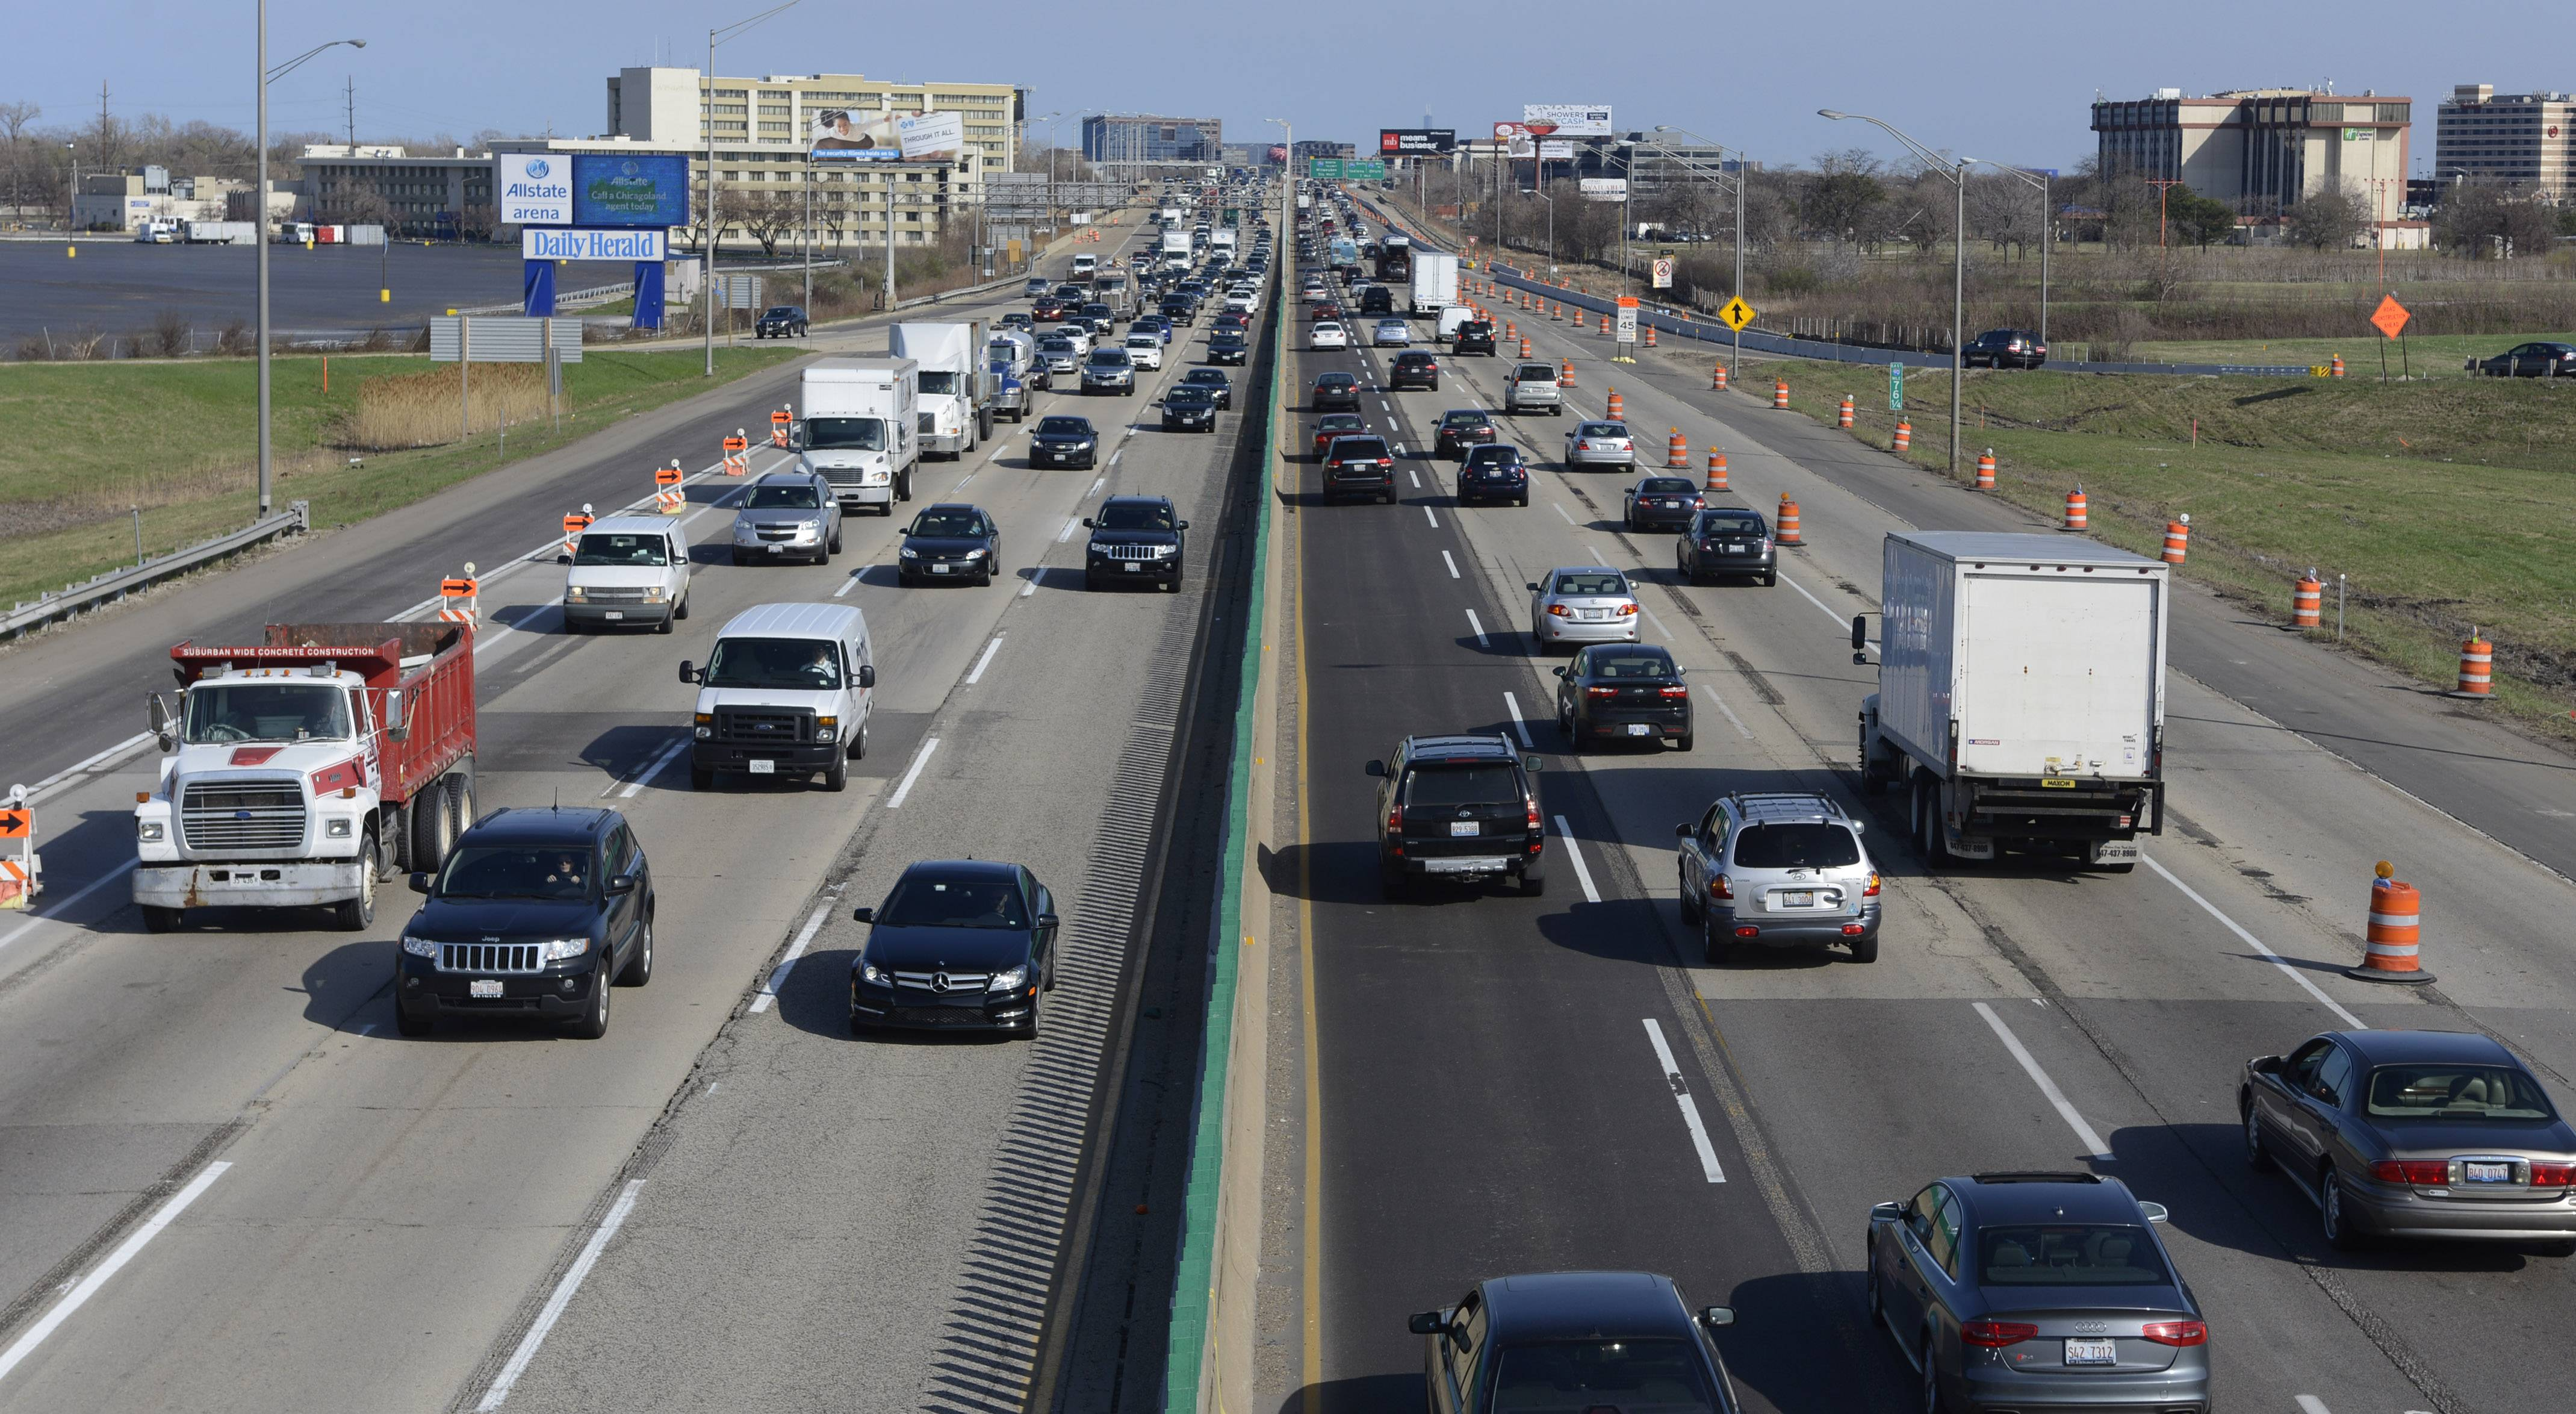 As construction begins on the Lee Street interchange on the Jane Addams Tollway, officials are also proposing an eastbound exit be included as part of the project.